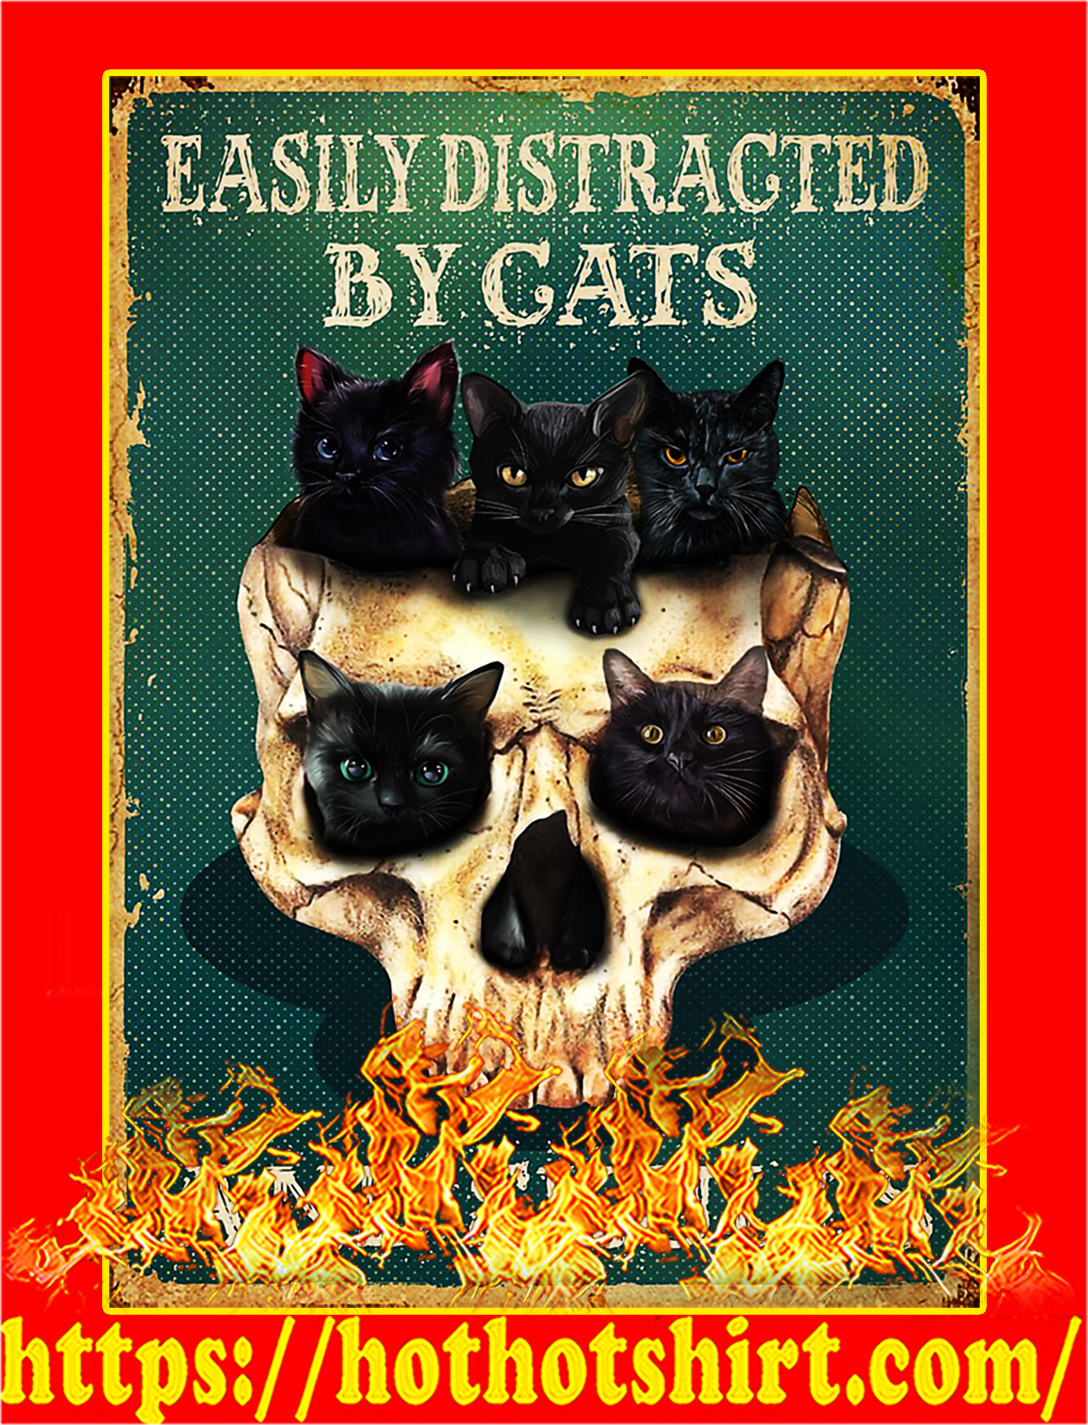 Easily distracted by cats and skulls poster - A1